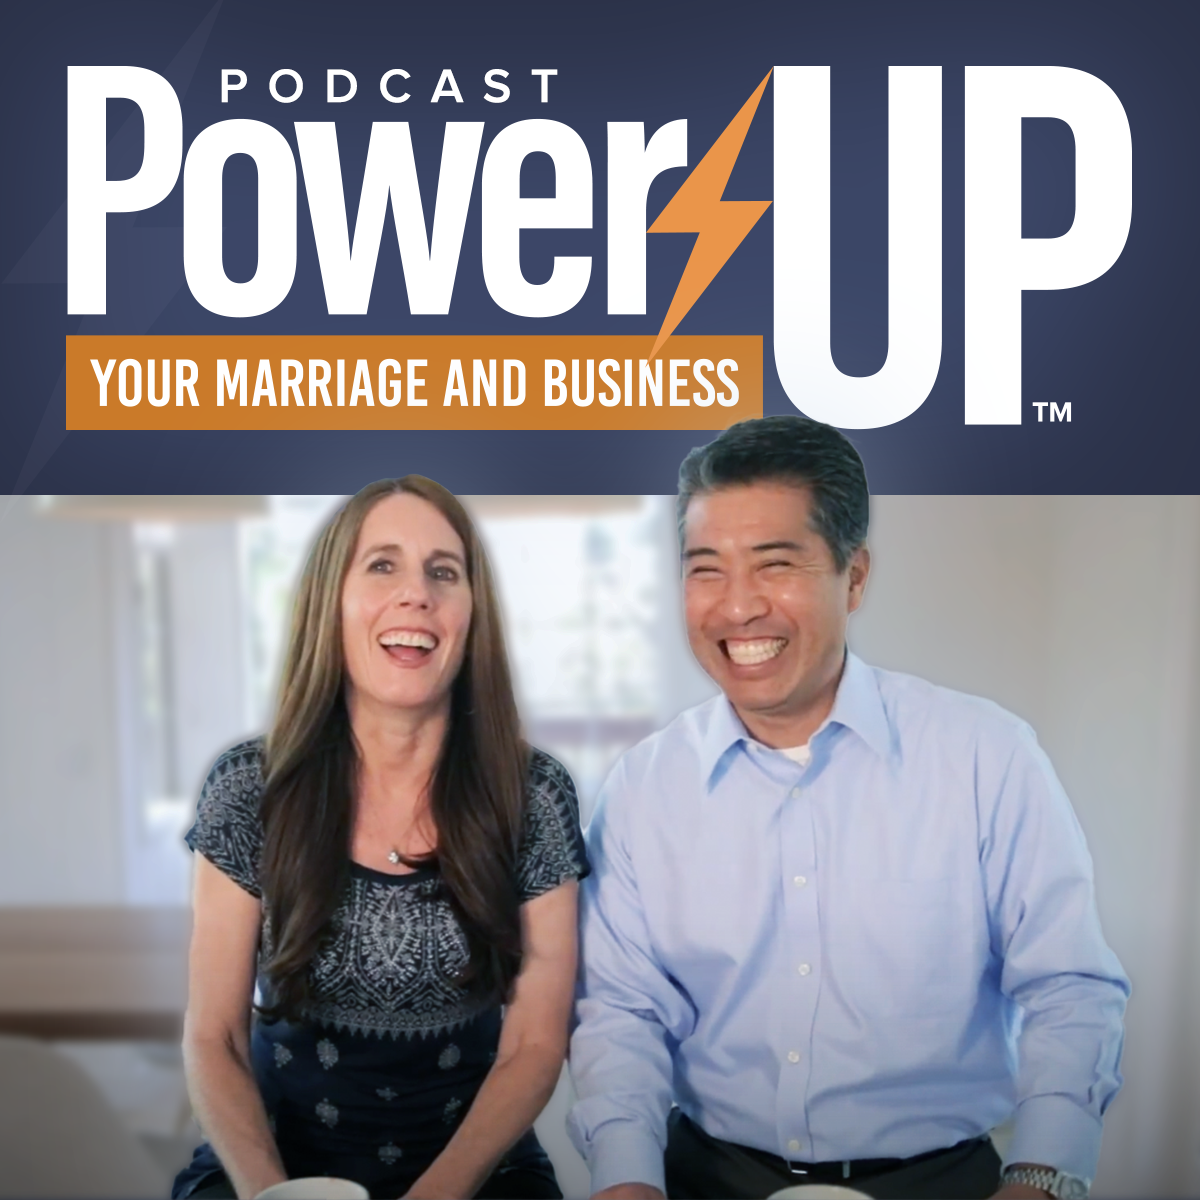 Power Up Your Marriage and Business show art